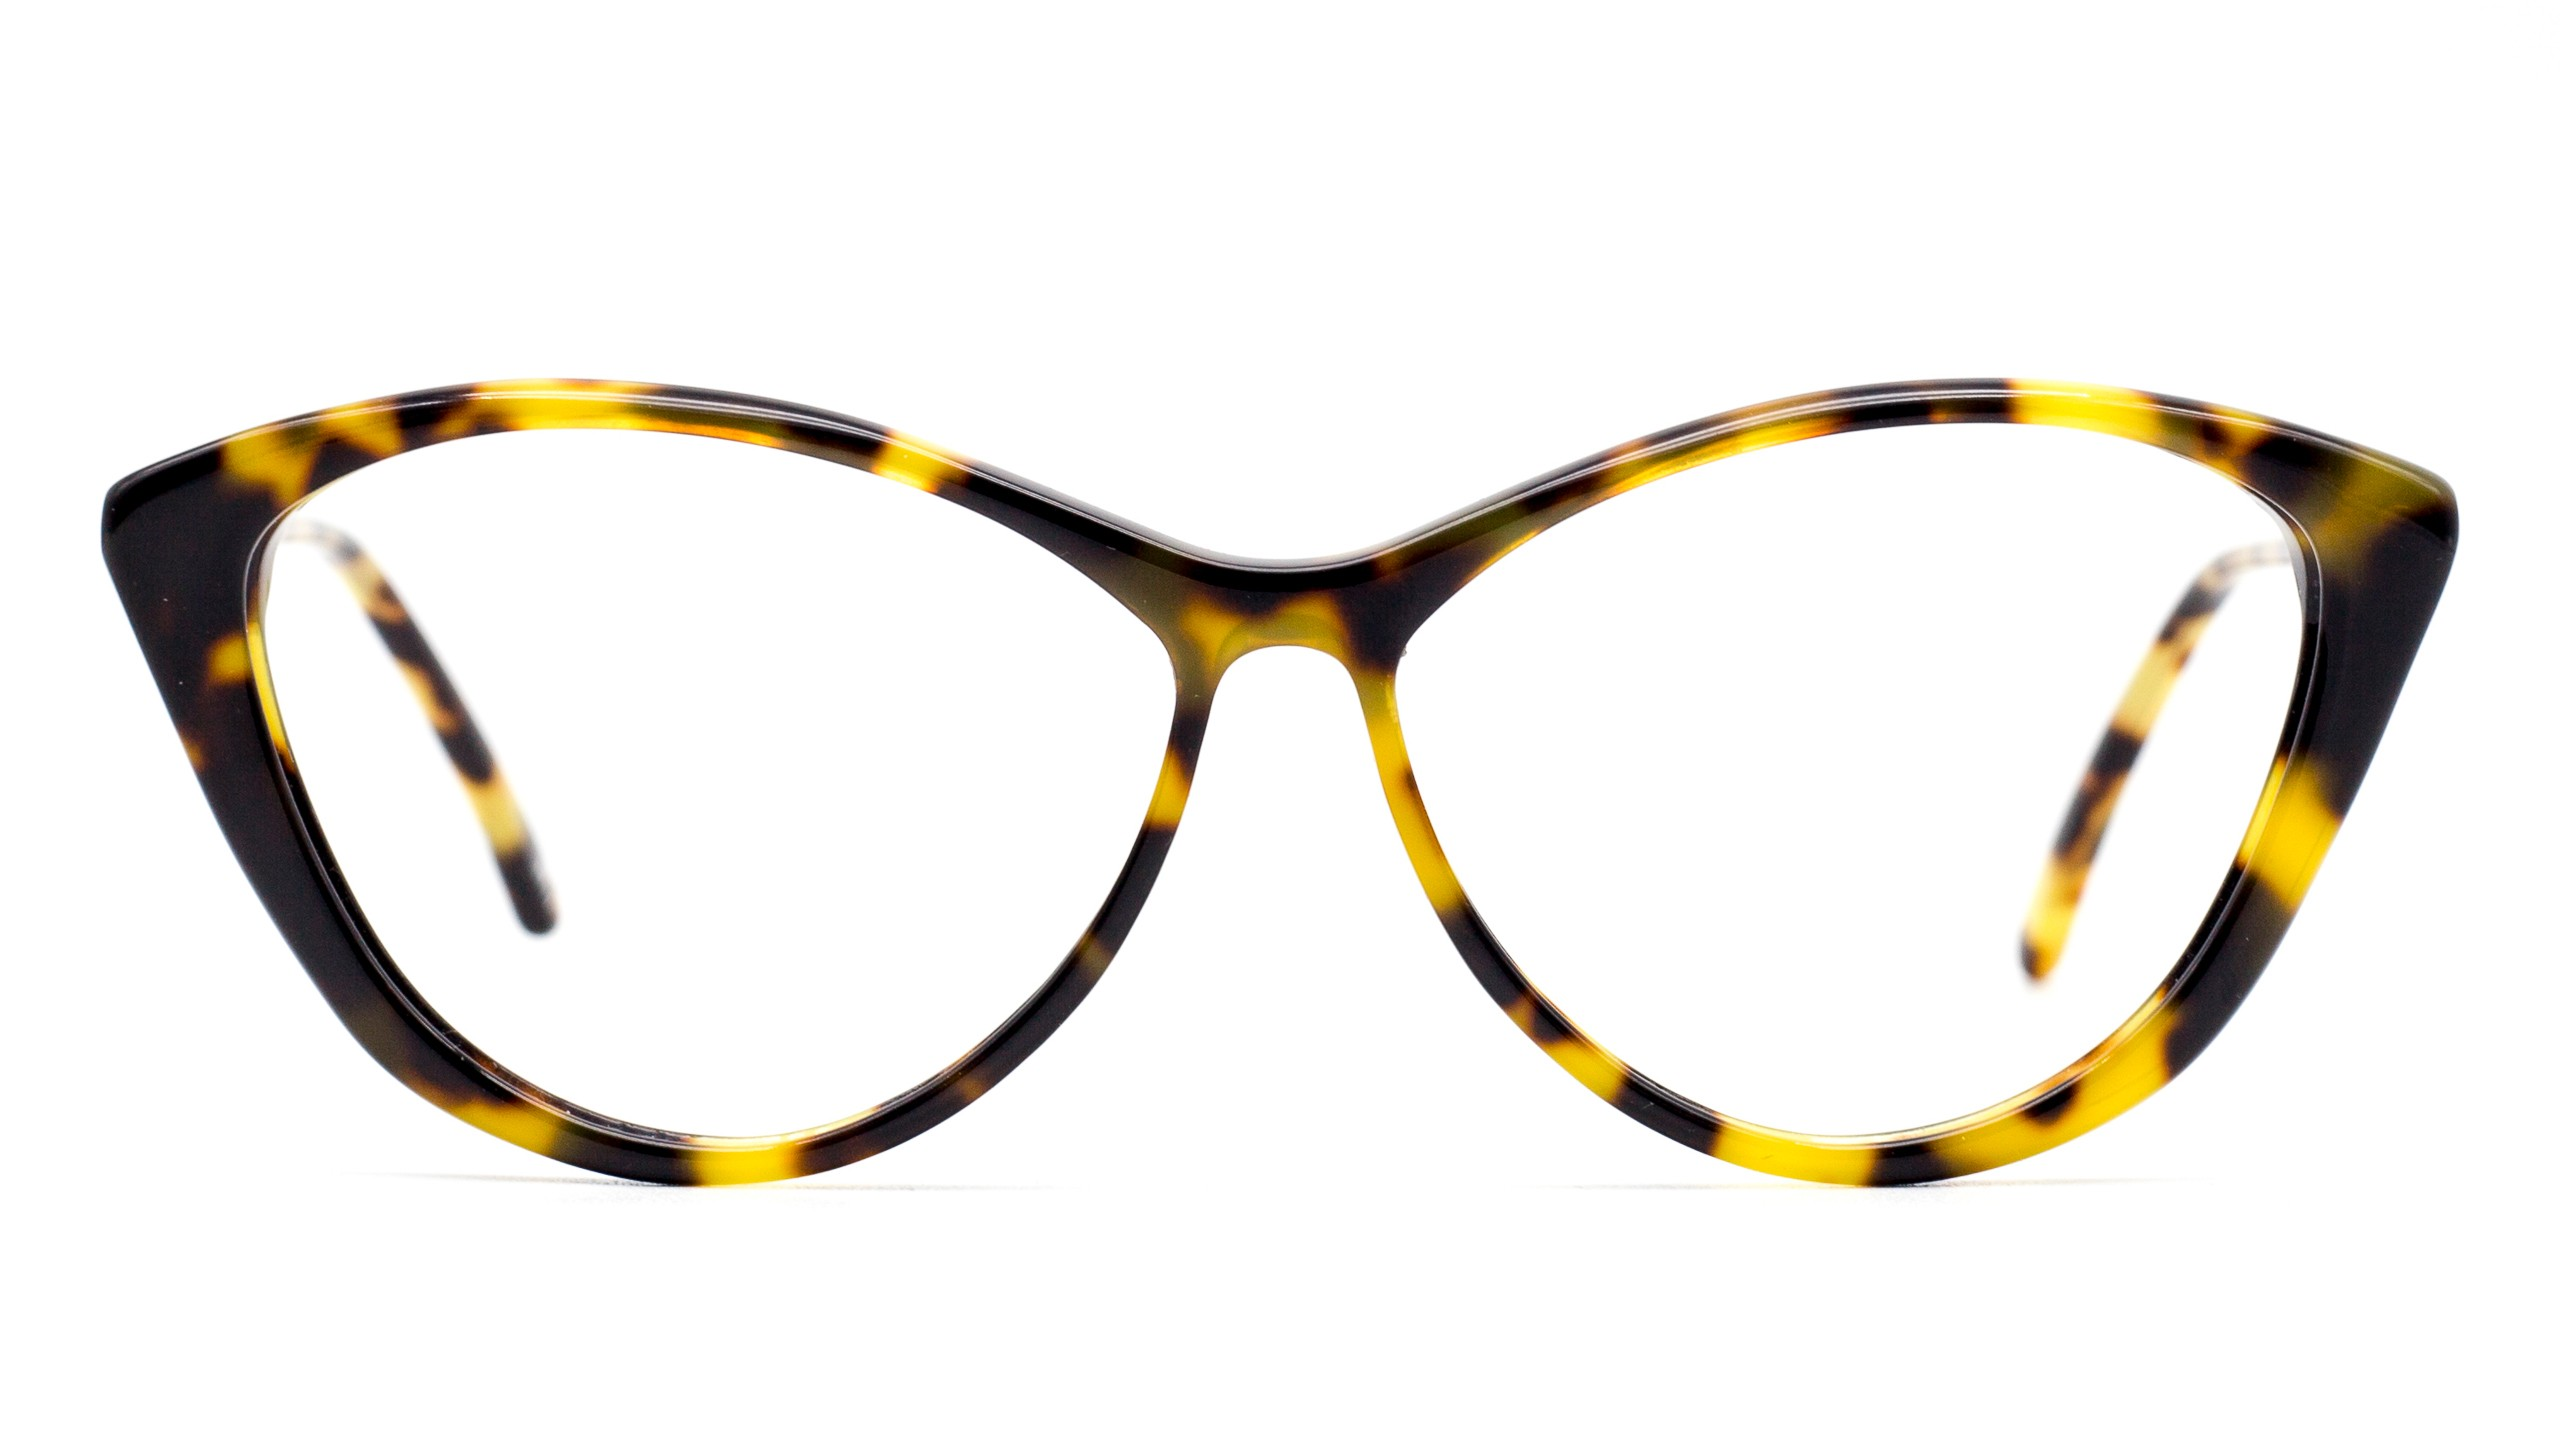 eyeglasses-Nathan-Kaltermann-made-in-Italy-Audrey-C05-Vista1